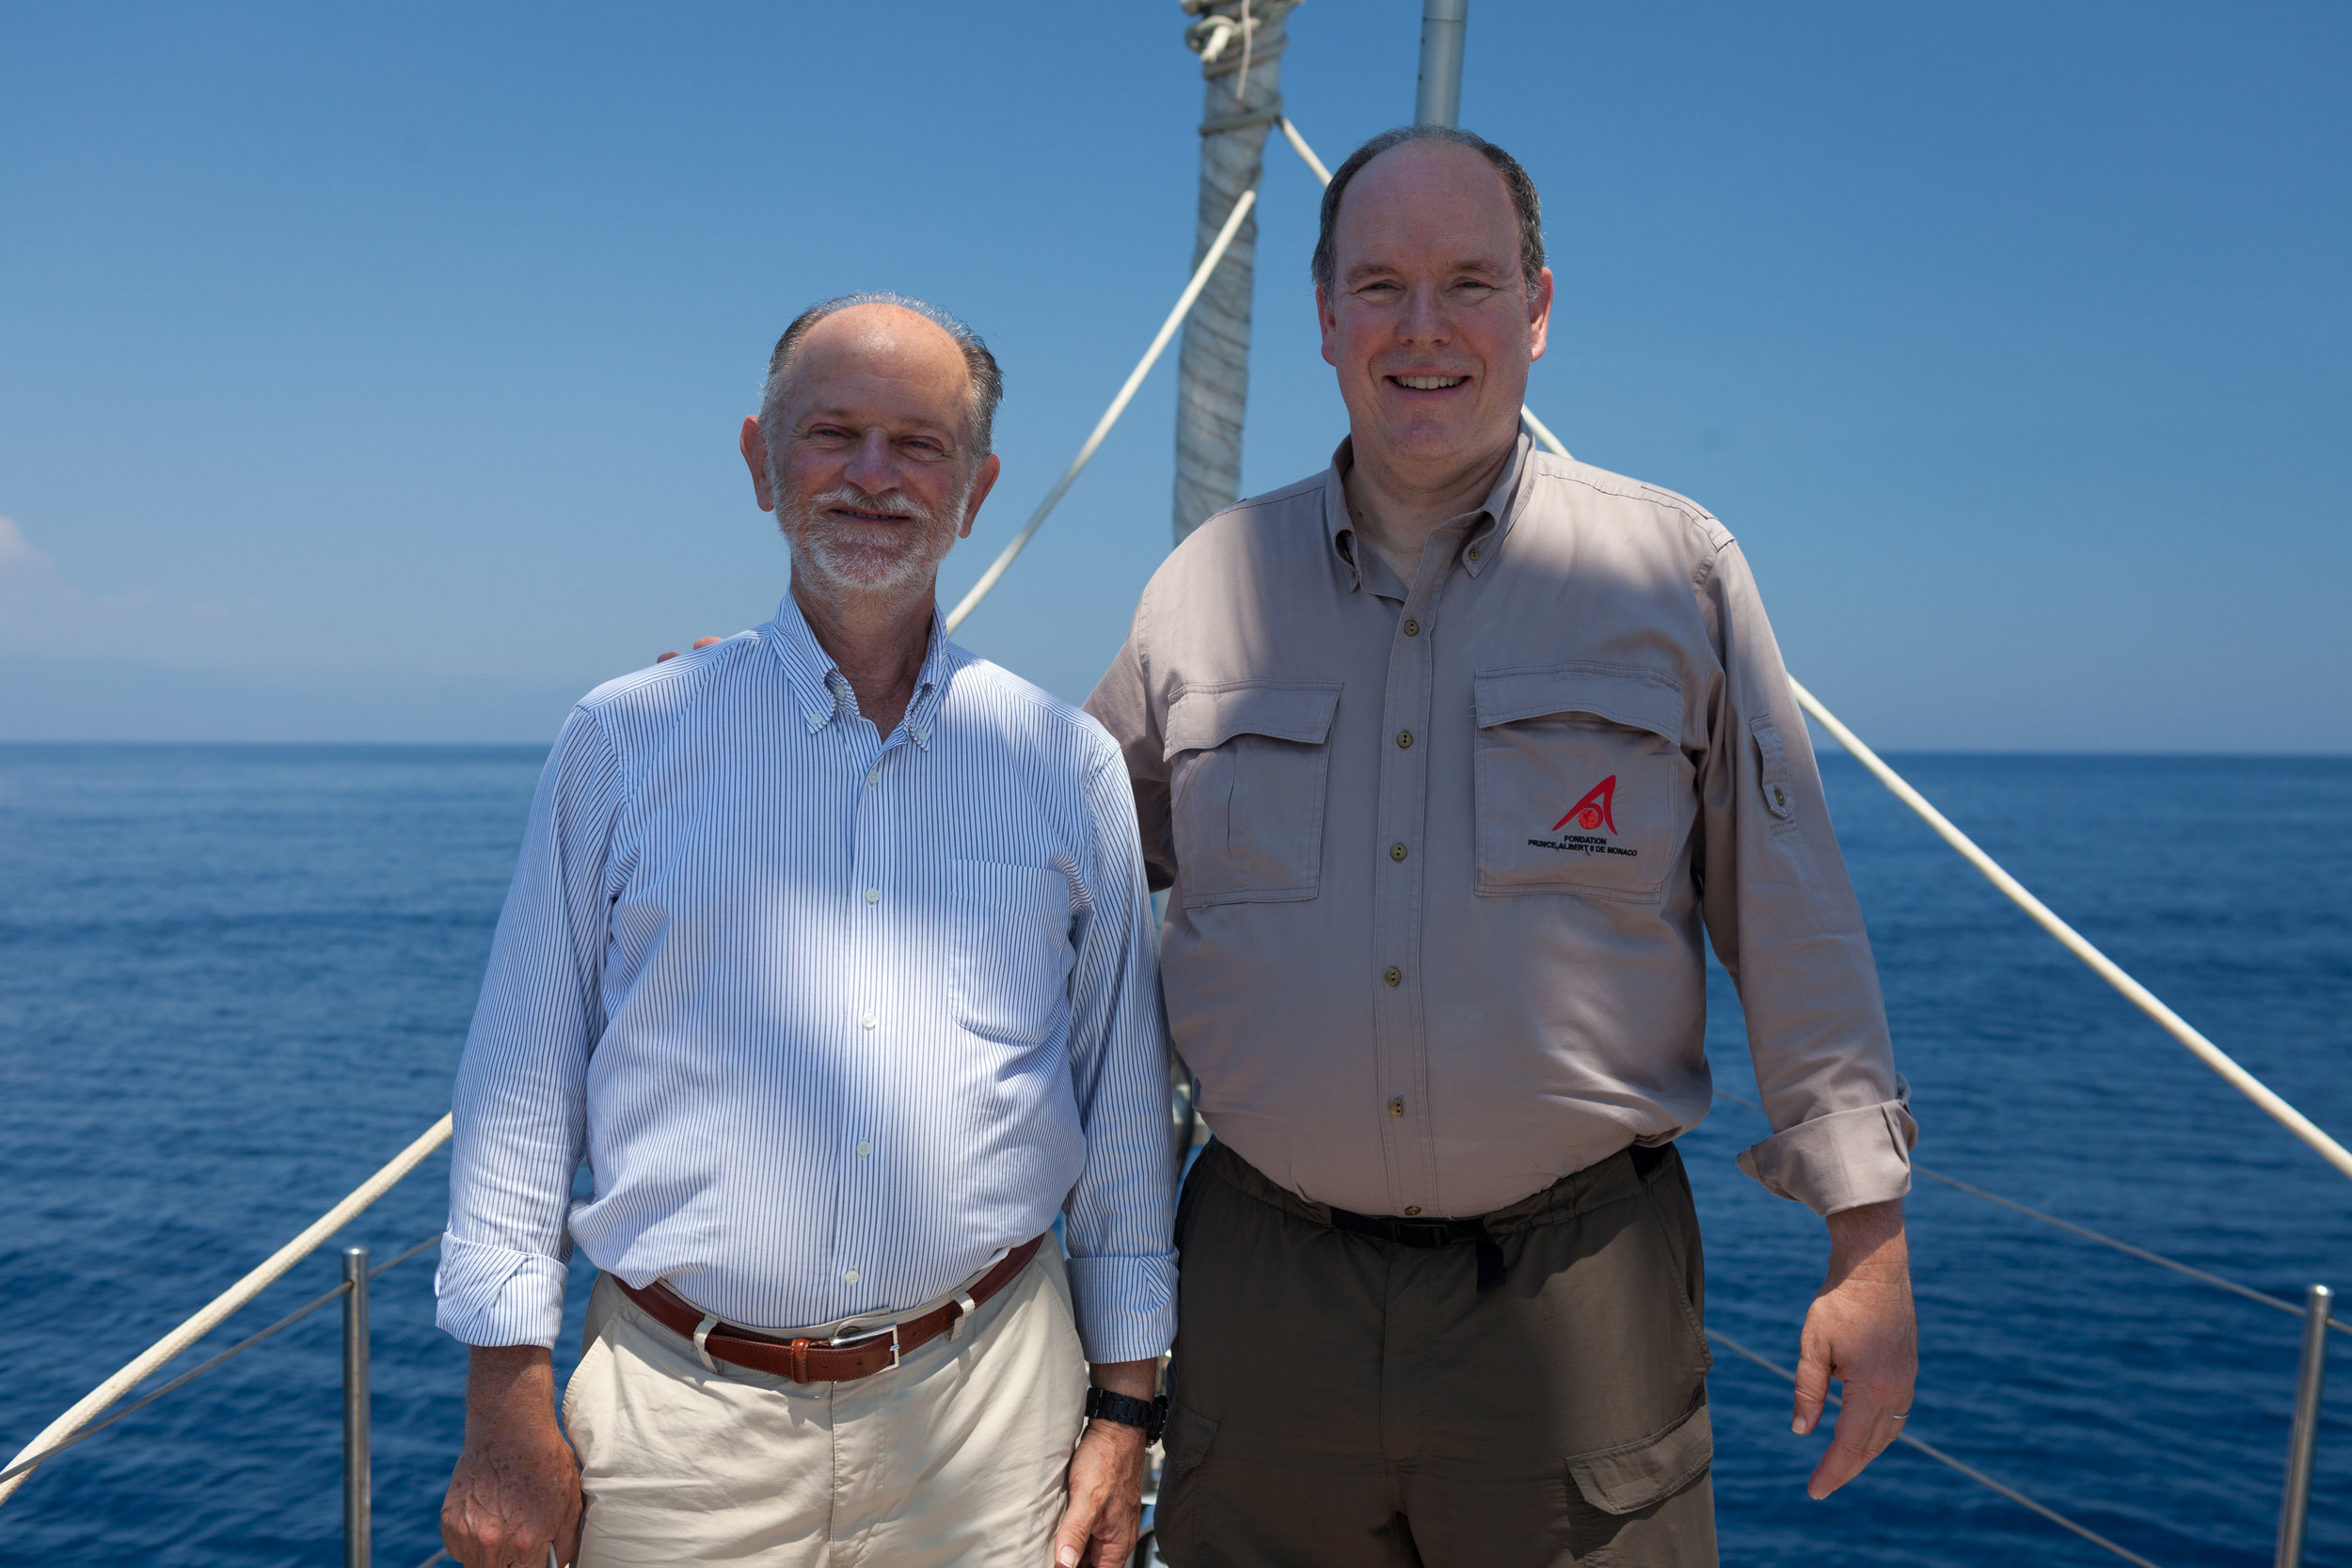 Italian marine scientist Giuseppe Notarbartolo di Sciara and Prince Albert II of Monaco out on the Pelagos Sanctuary, celebrating this special area that they have helped to protect and safe guard over the years.